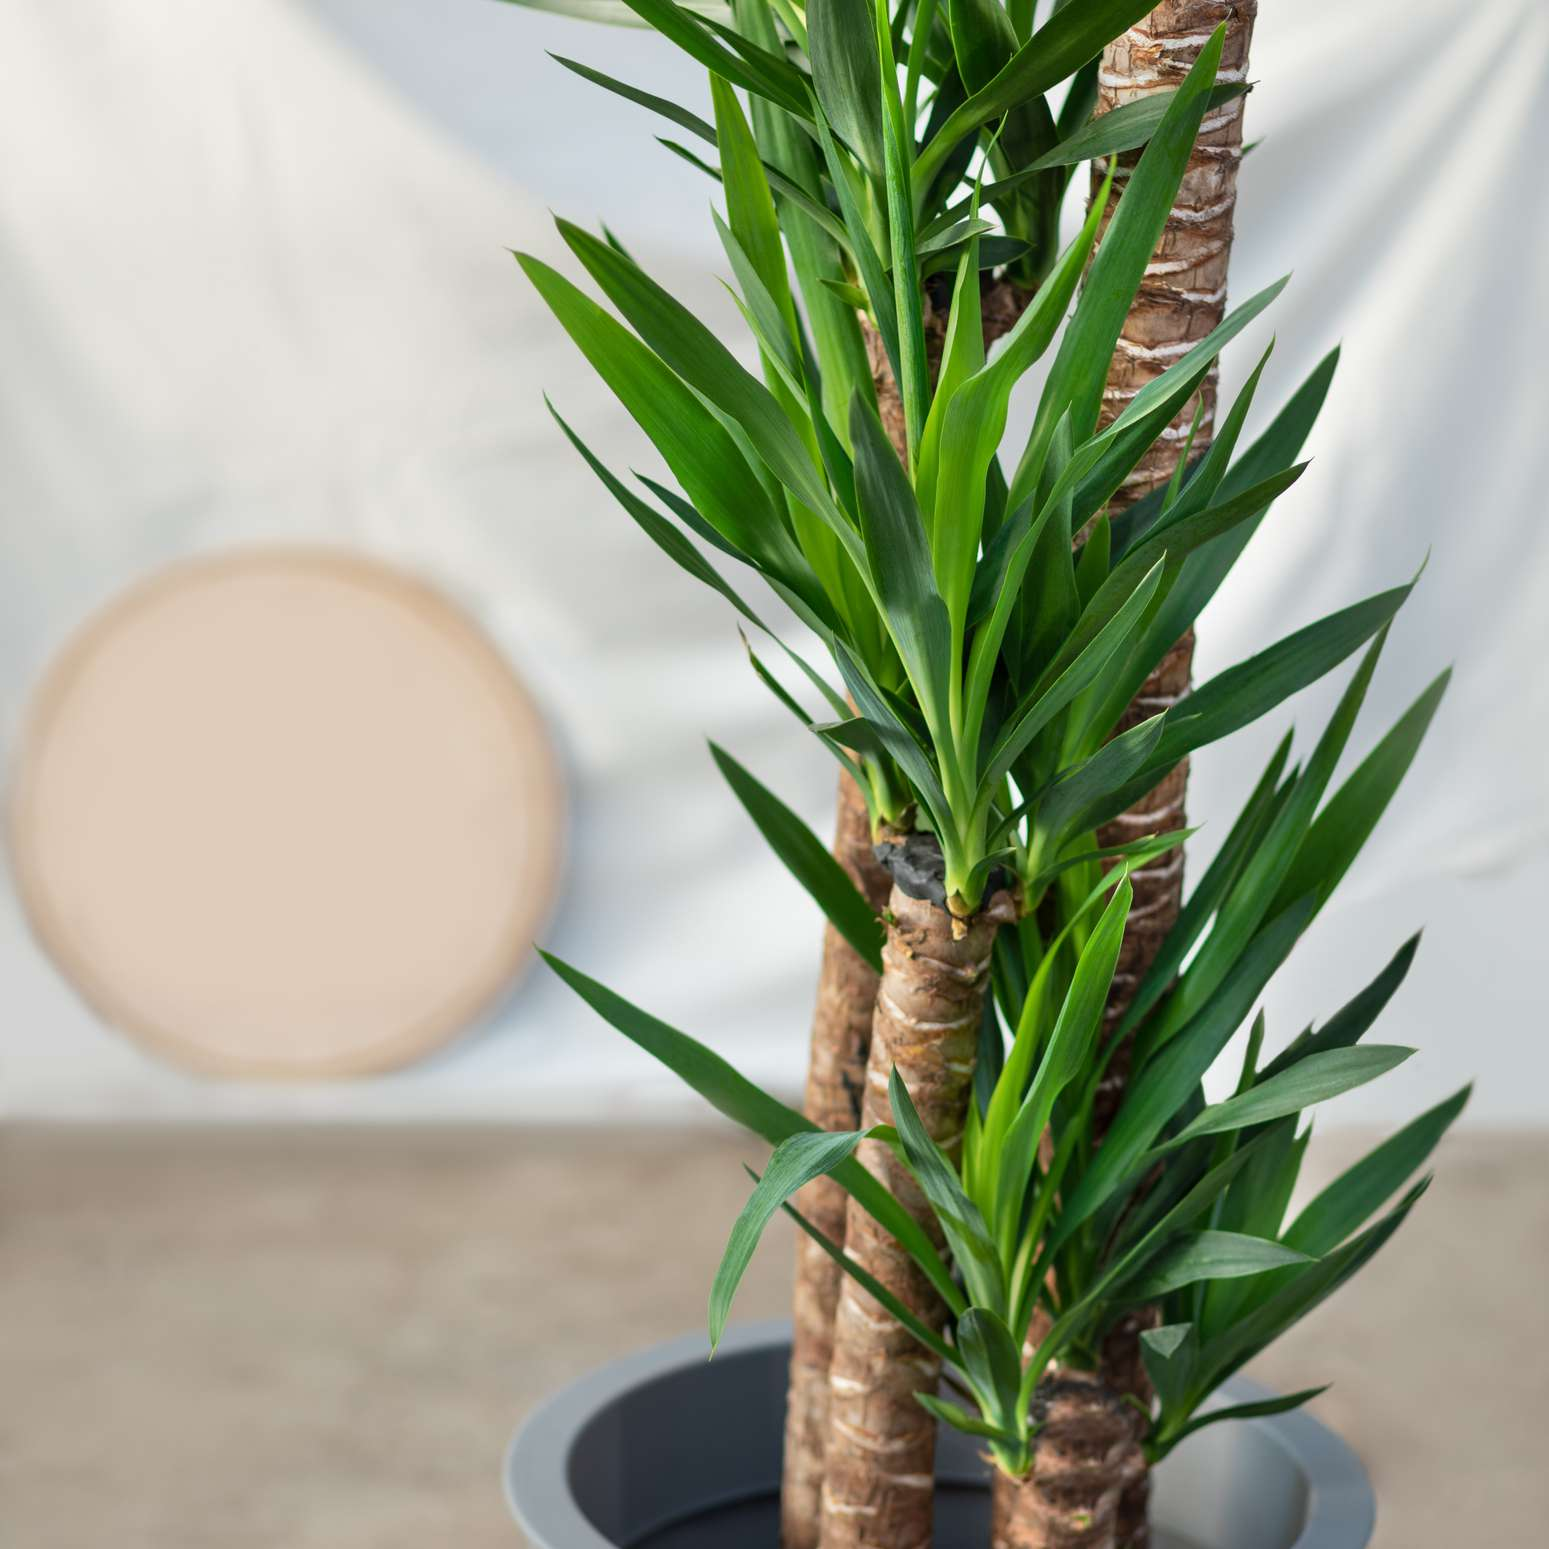 A yucca plant in a gray pot with spiky green leaves